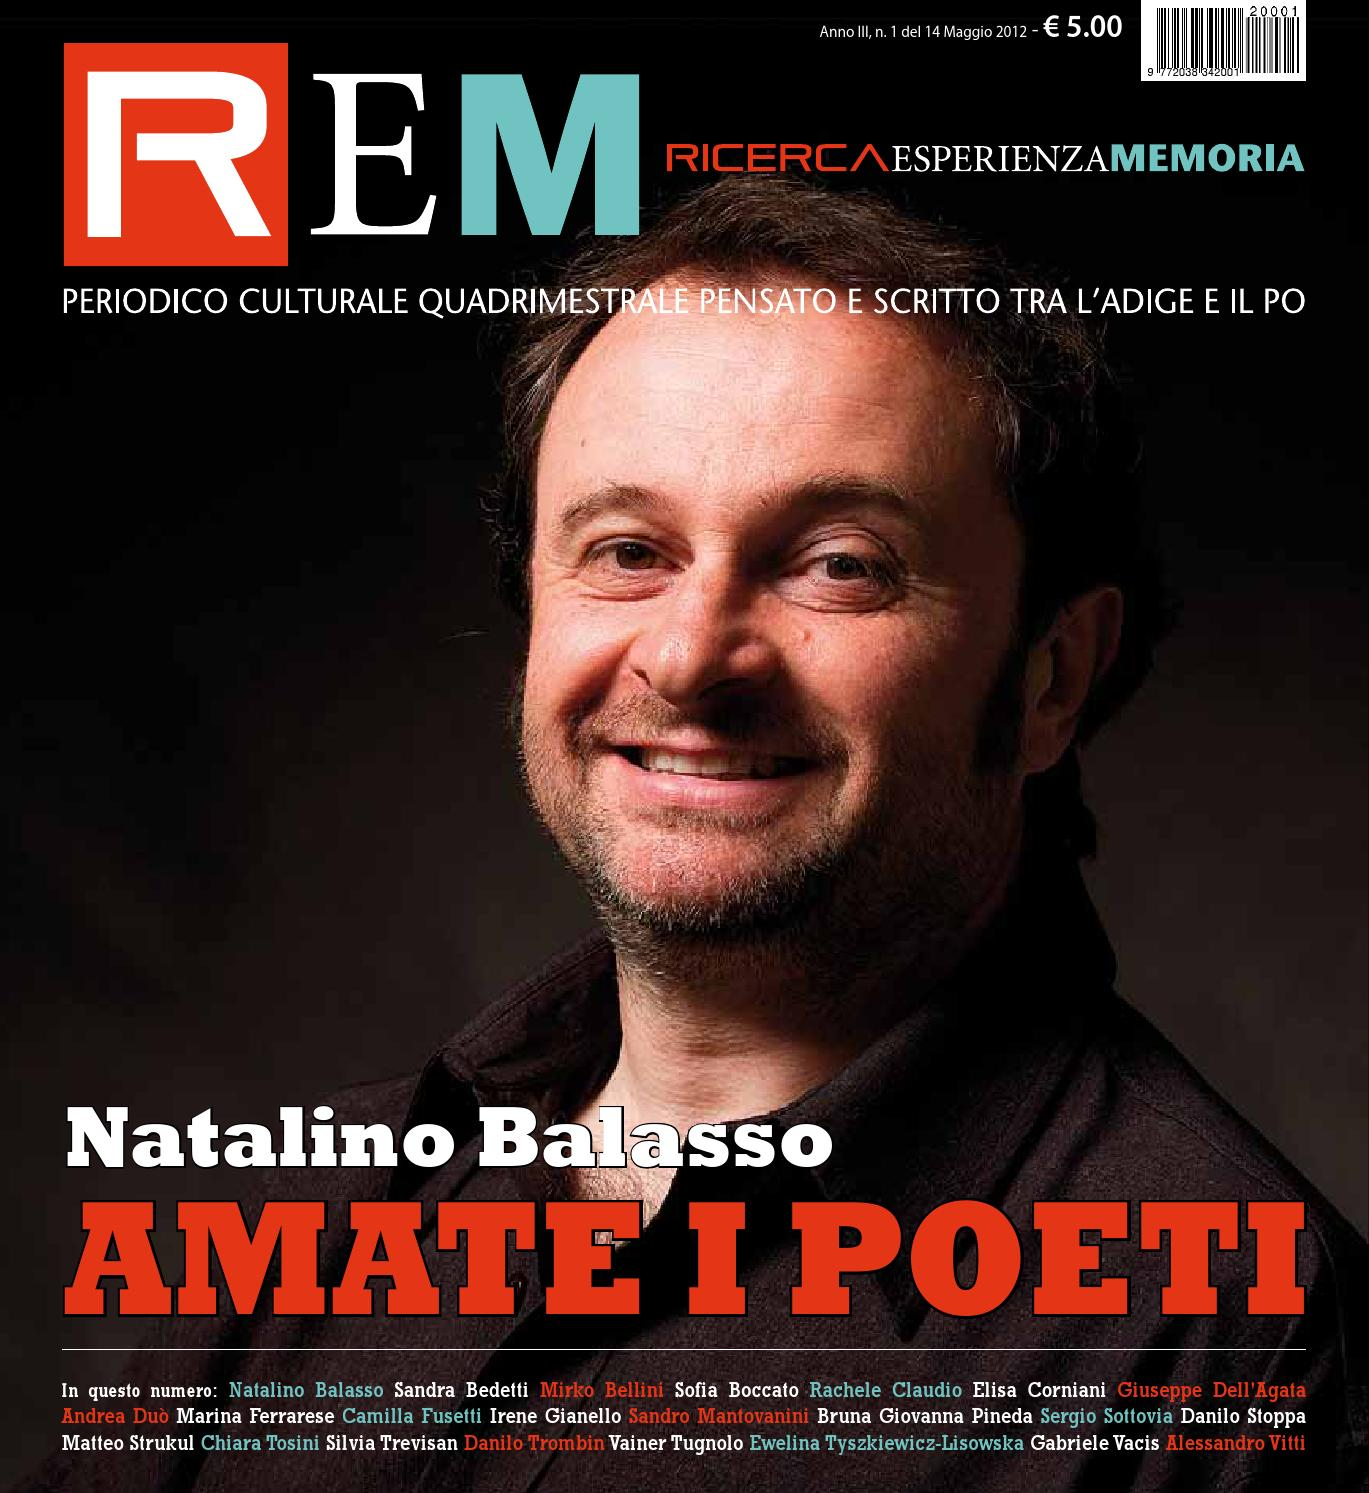 REM Anno III n 1 del 14 maggio 2012 Amate i poeti by Paolo Spinello issuu